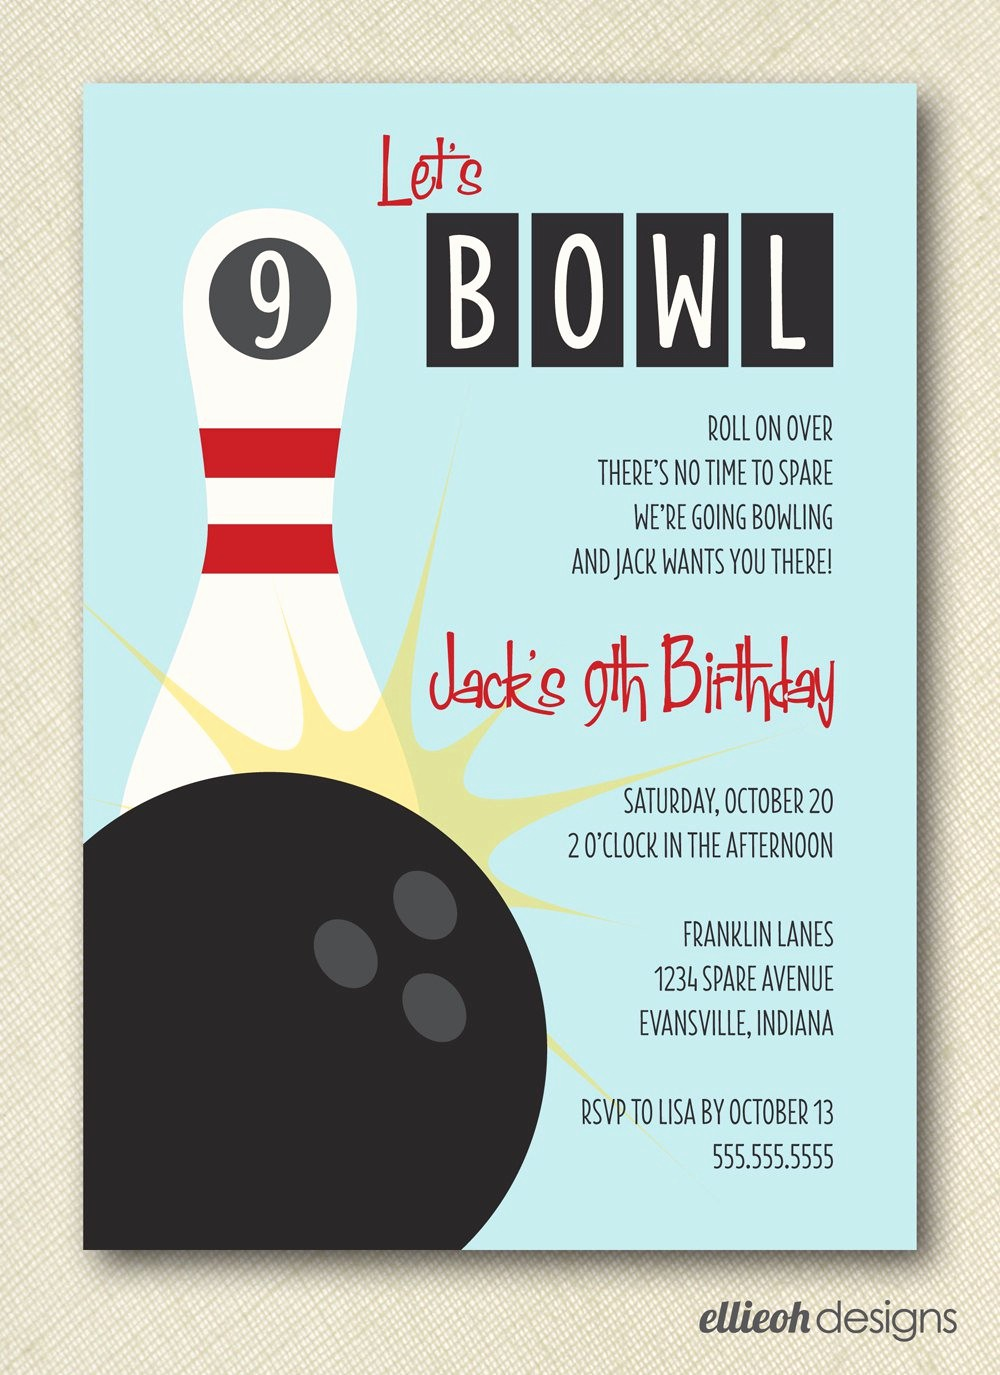 Free Templates for Birthday Invitations Inspirational Free Printable Bowling Party Invitation Templates